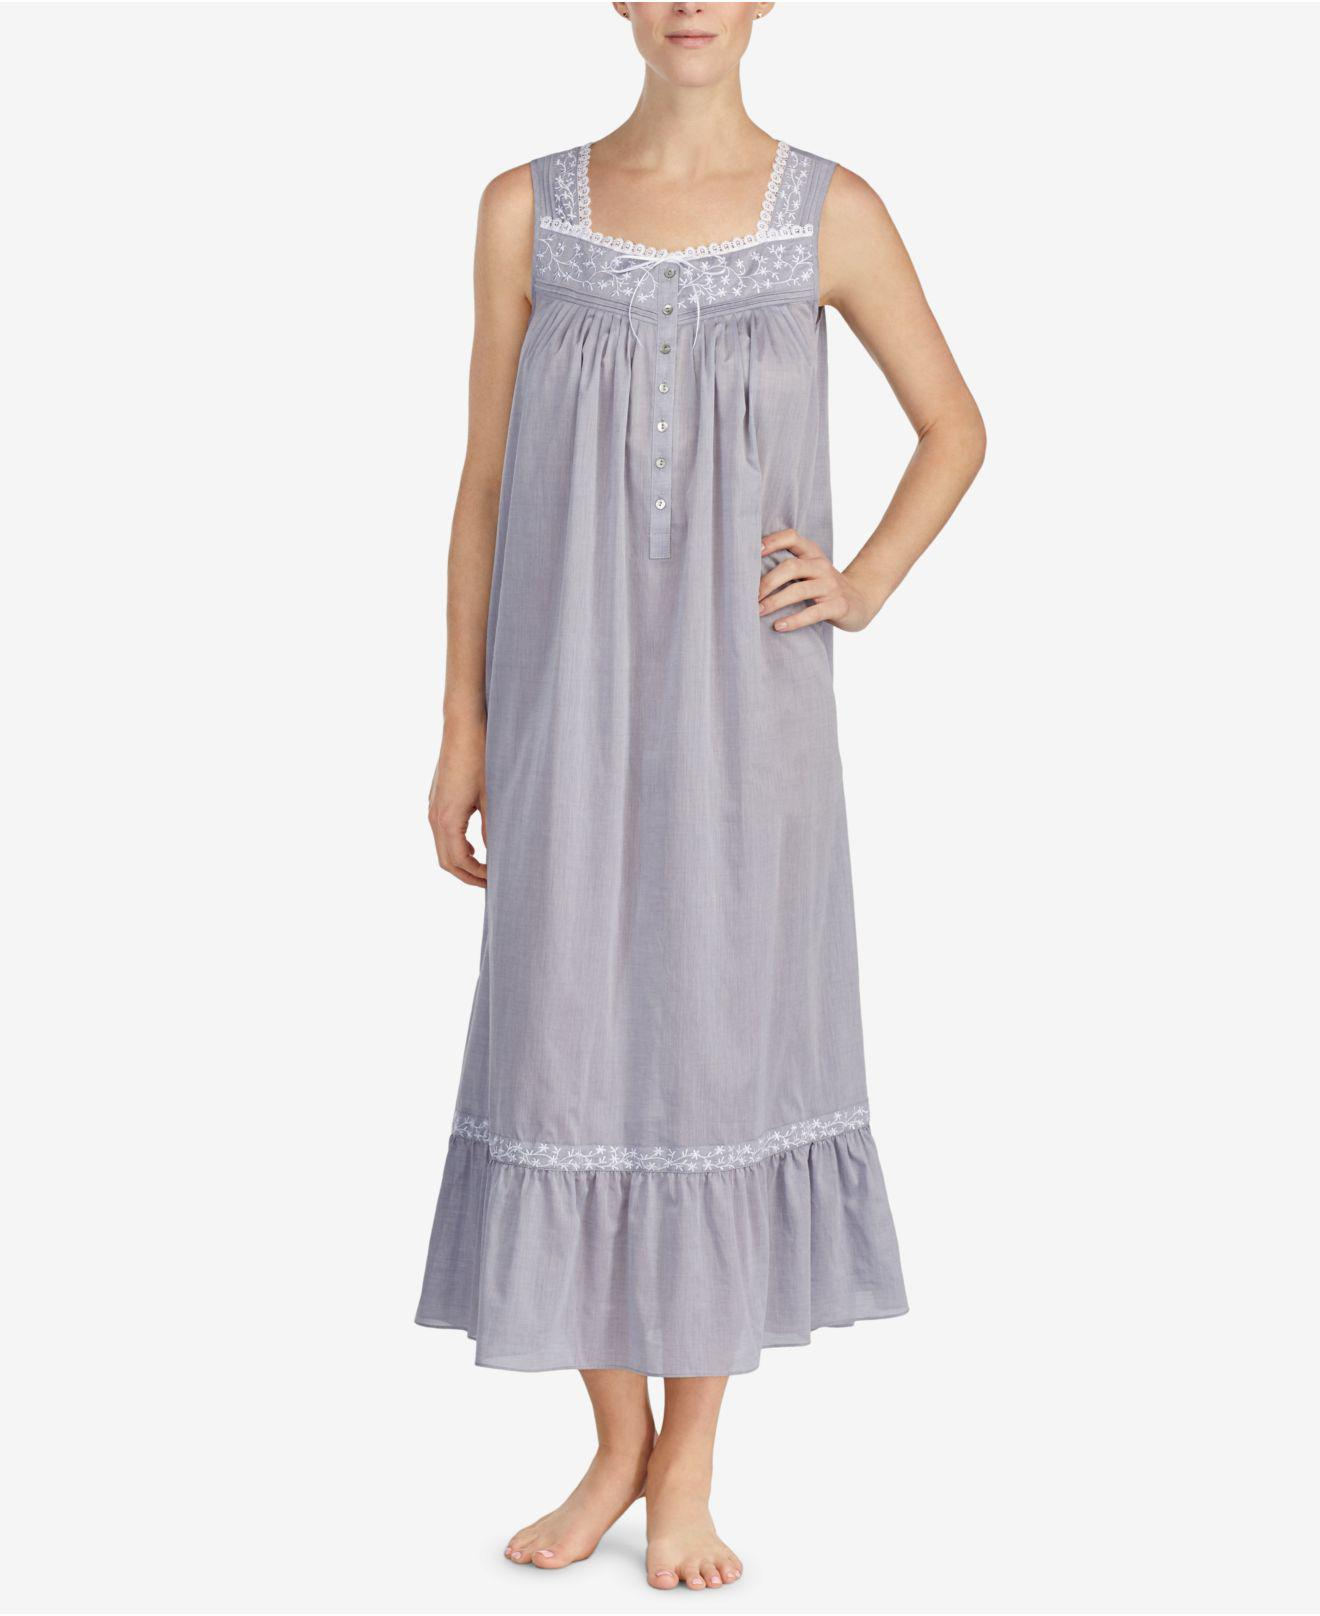 c59c3bd548 Lyst - Eileen West Petite Cotton Chambray Ballet Nightgown - Save 36%